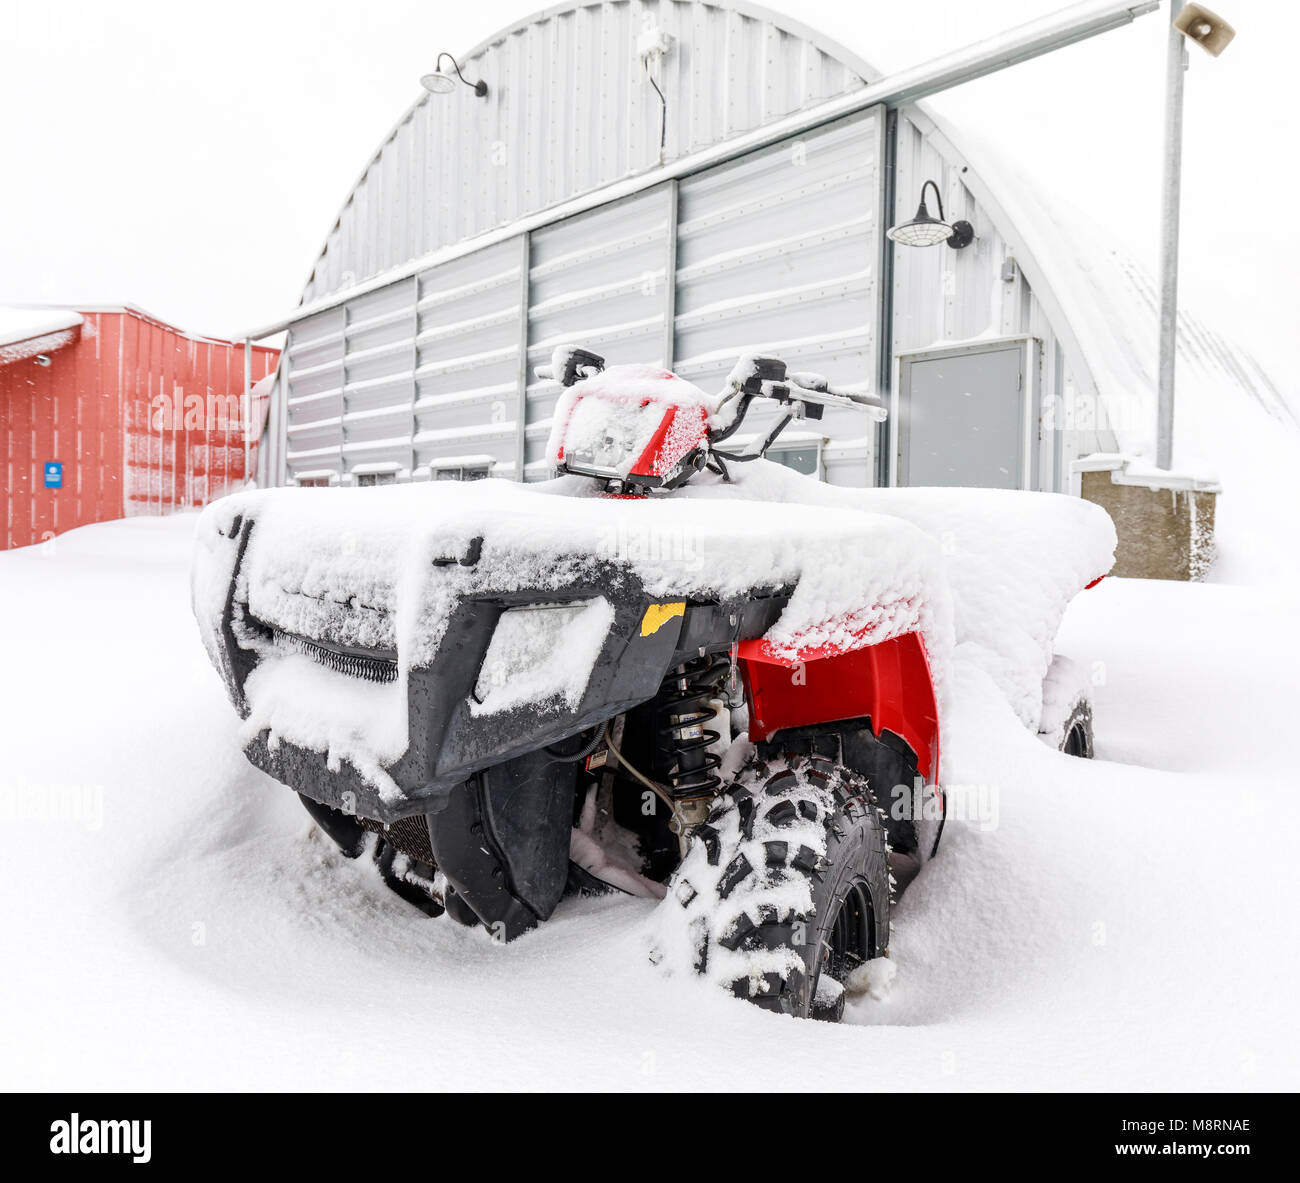 All Terrain Vehicle, 4-Wheeler ATV, im Schnee, Manitoba, Kanada. Stockbild